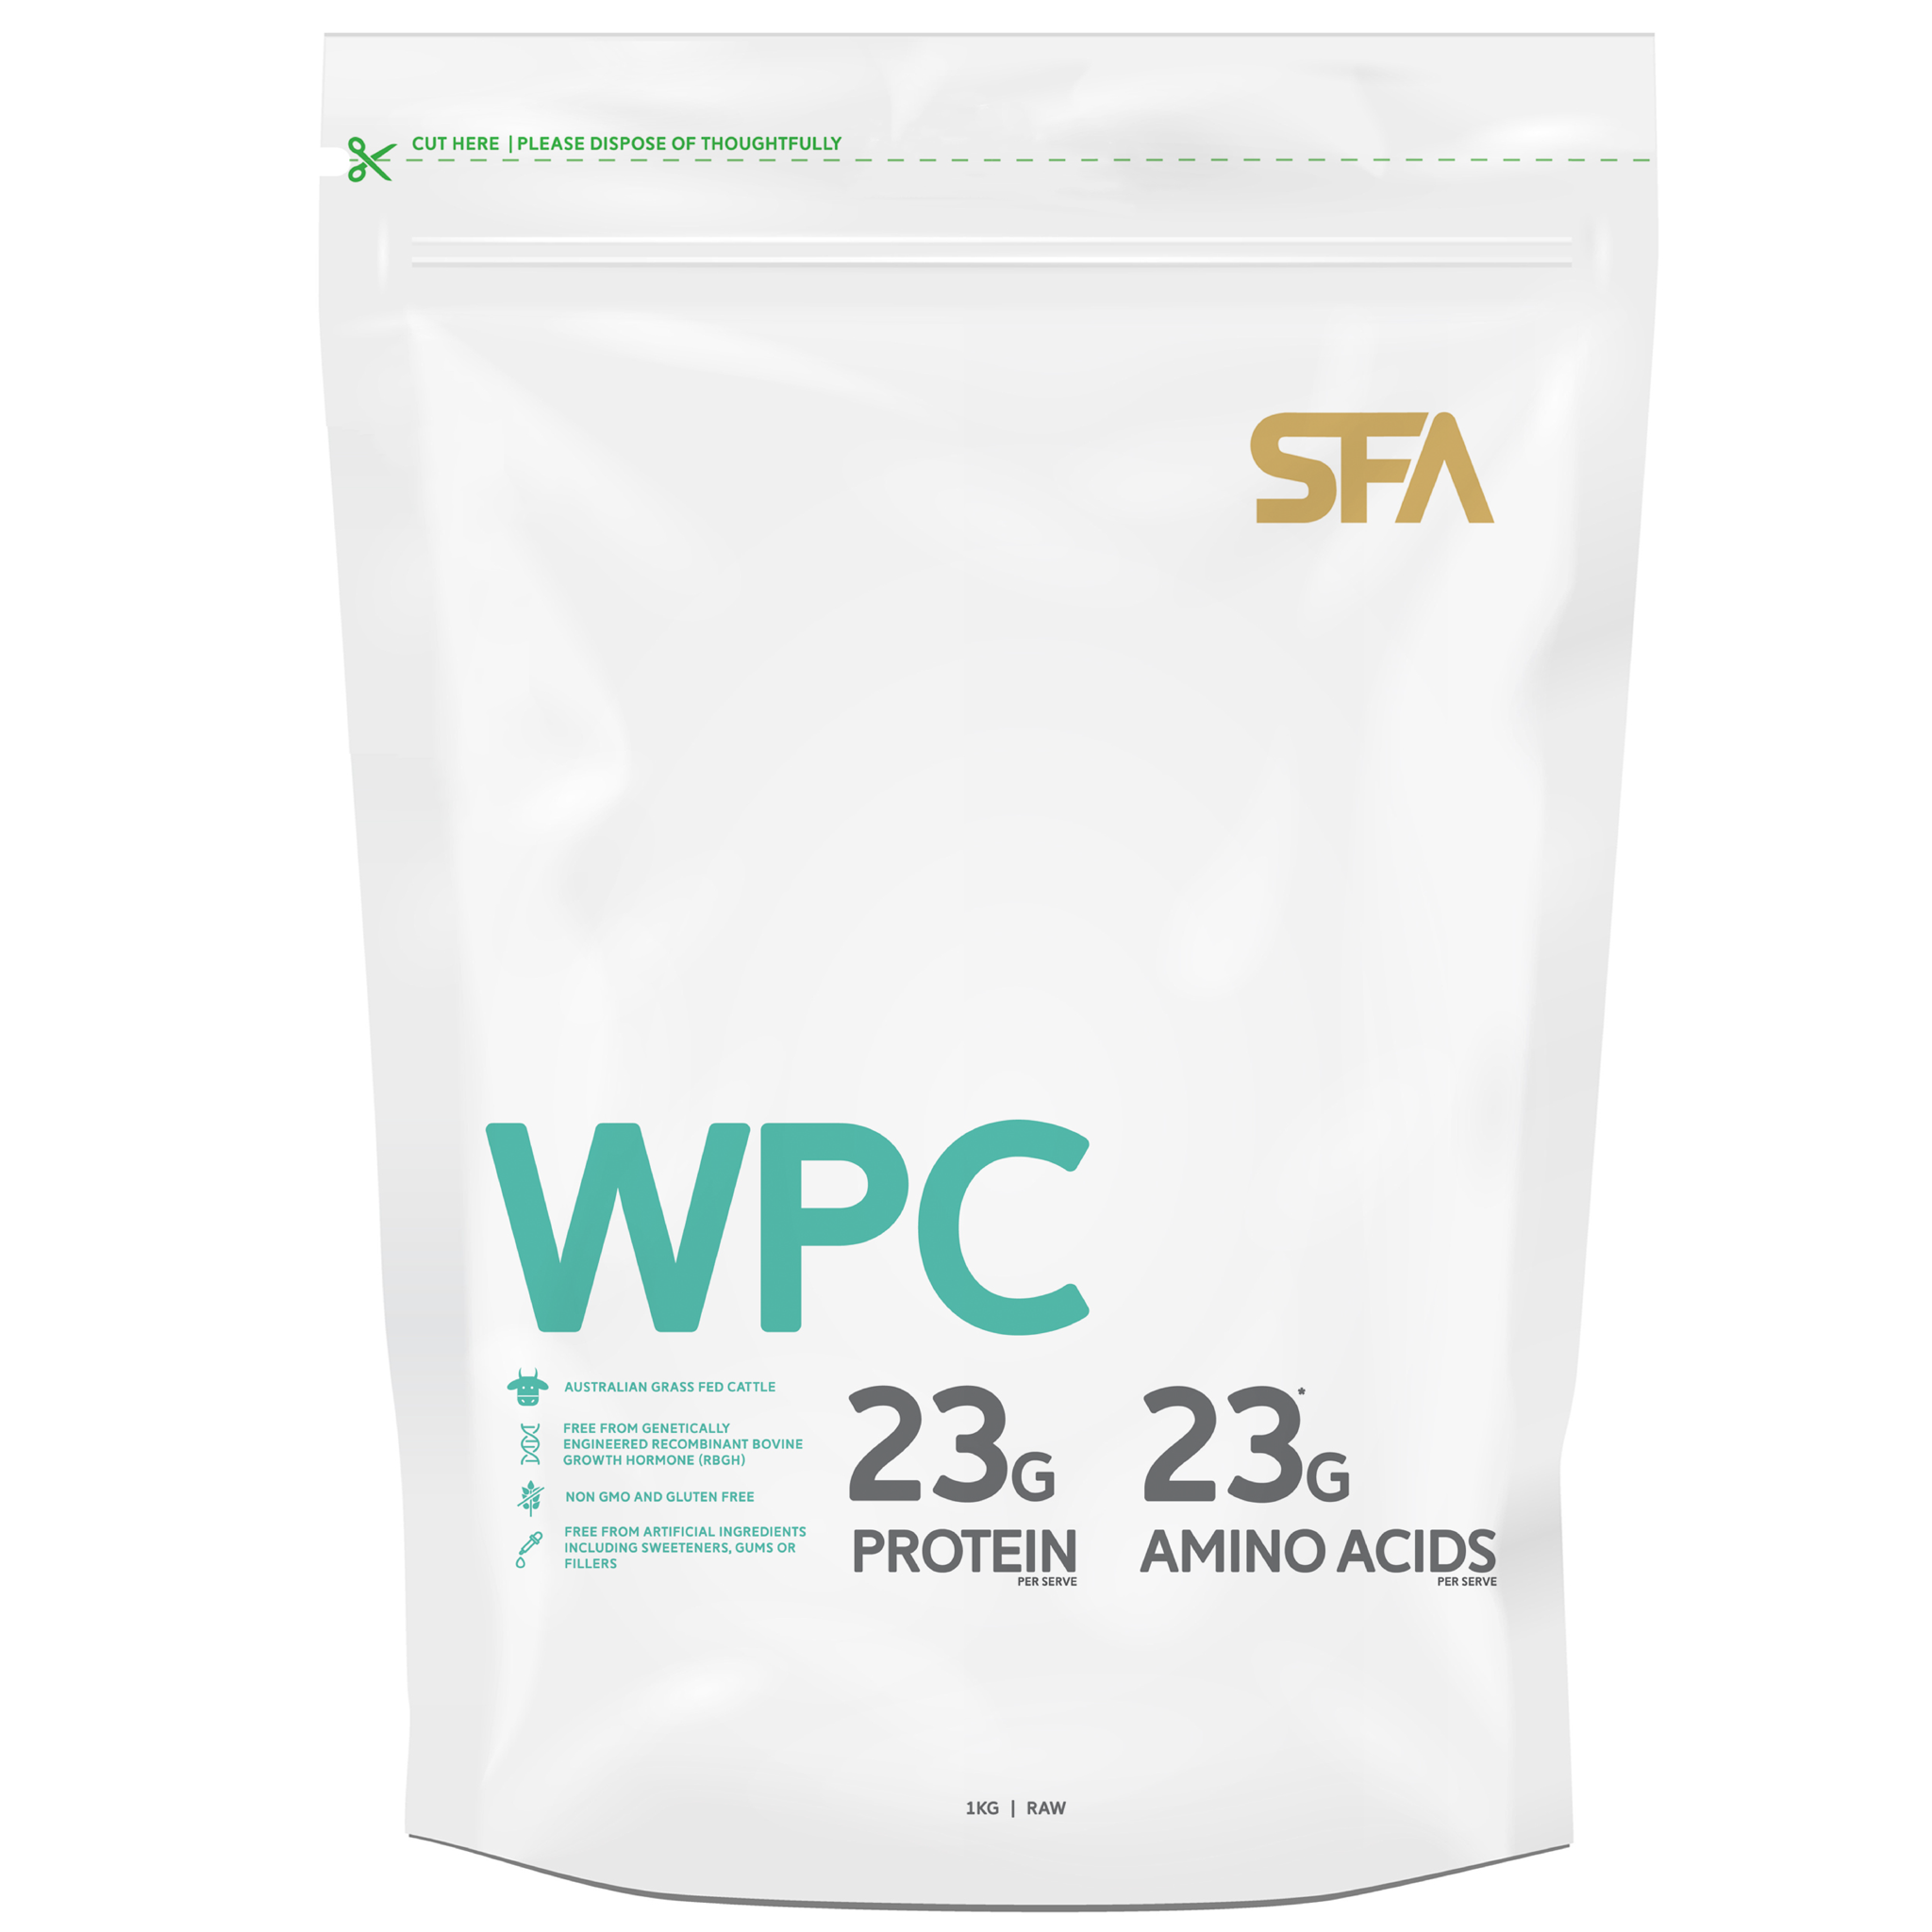 Whey Protein Concentrate WPC Protein